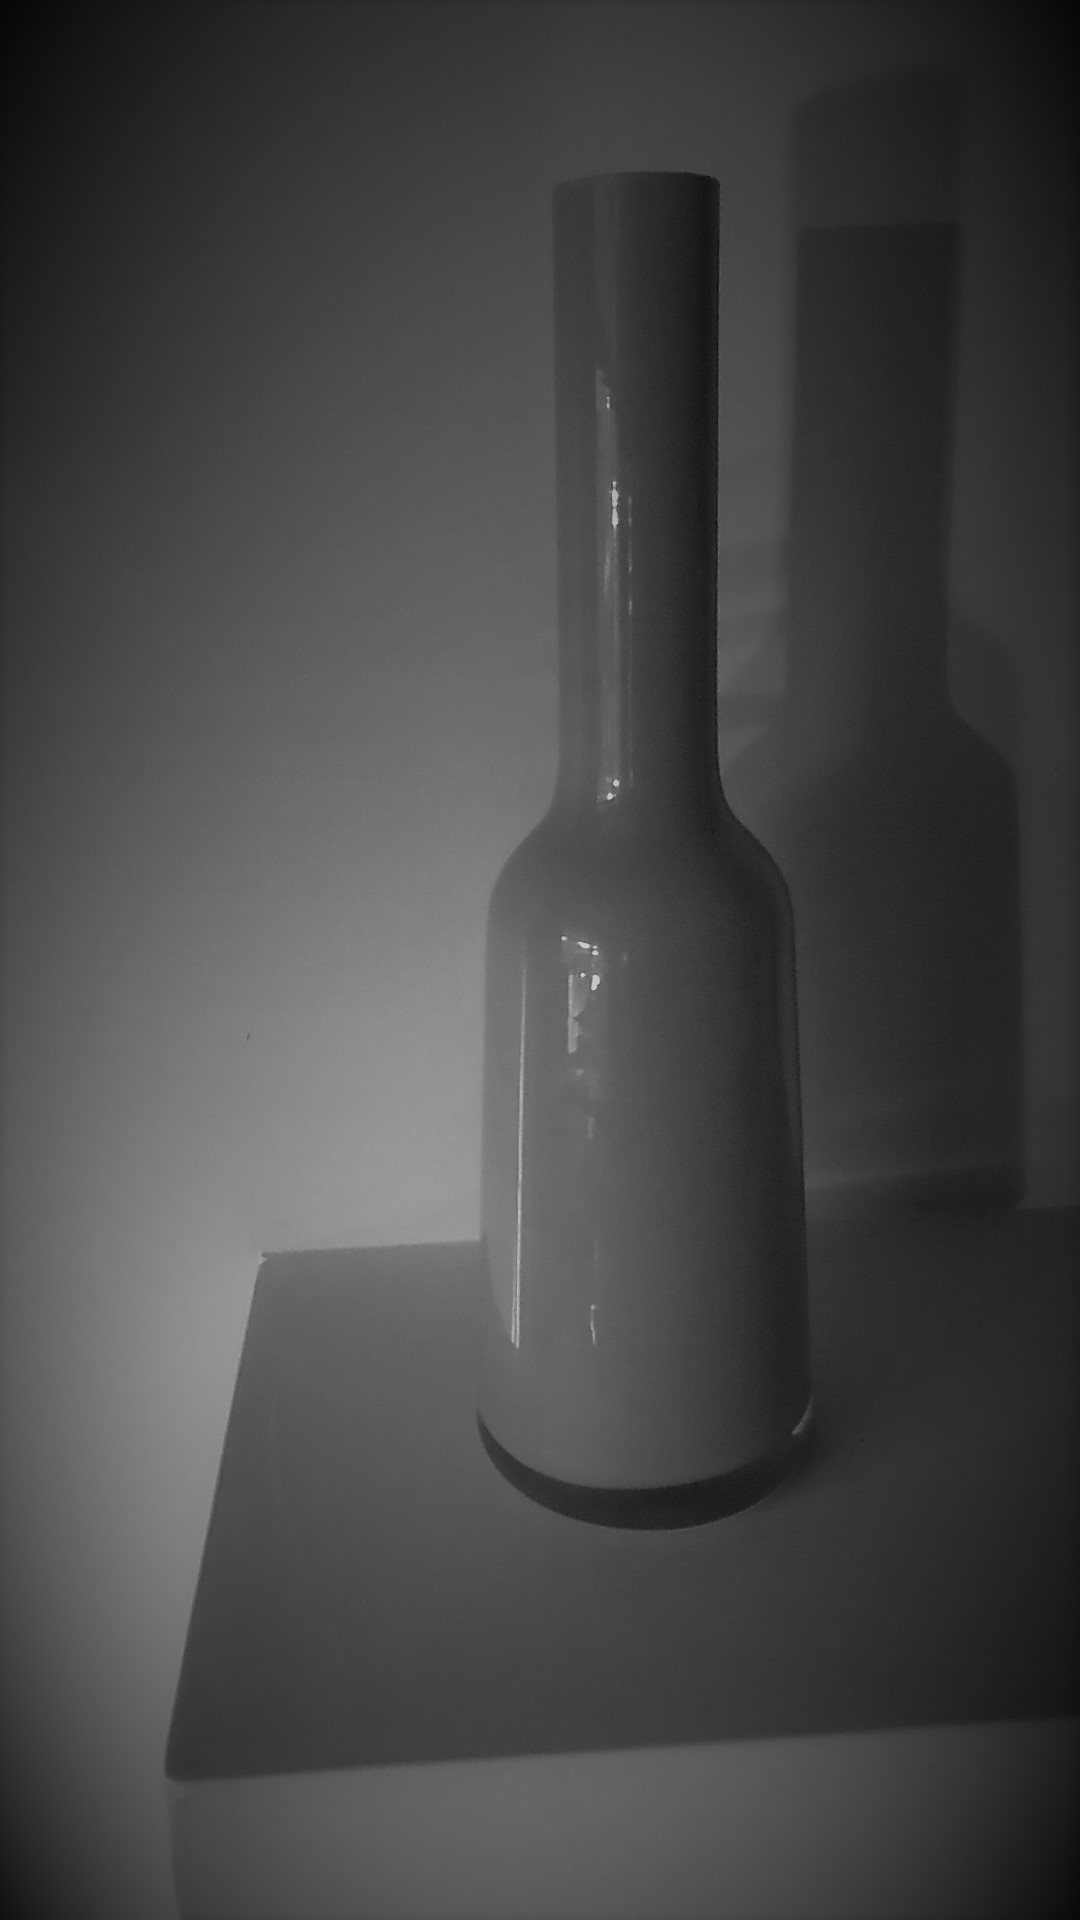 Superb 32mm tall Villeroy&Boch Nek Bottle Vase in the Pure Stone Colourway